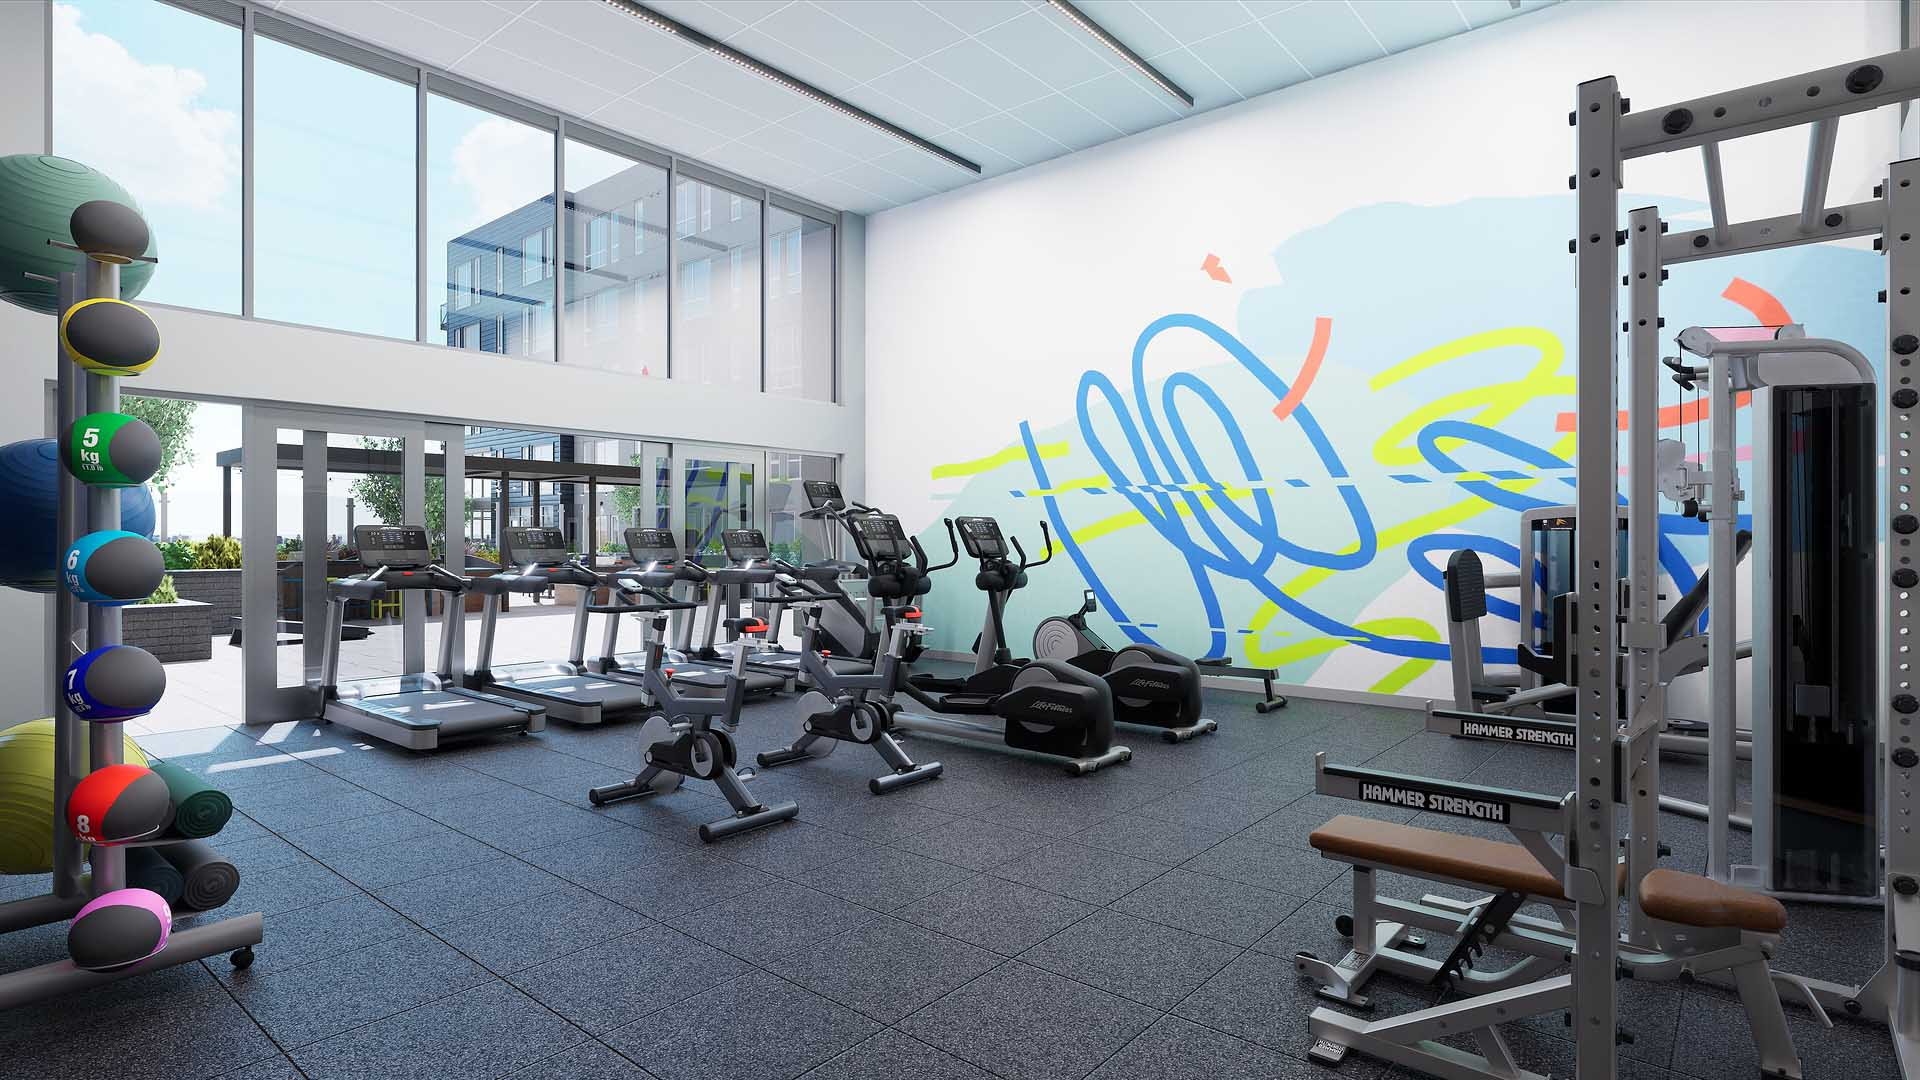 A rendering of an apartment fitness center